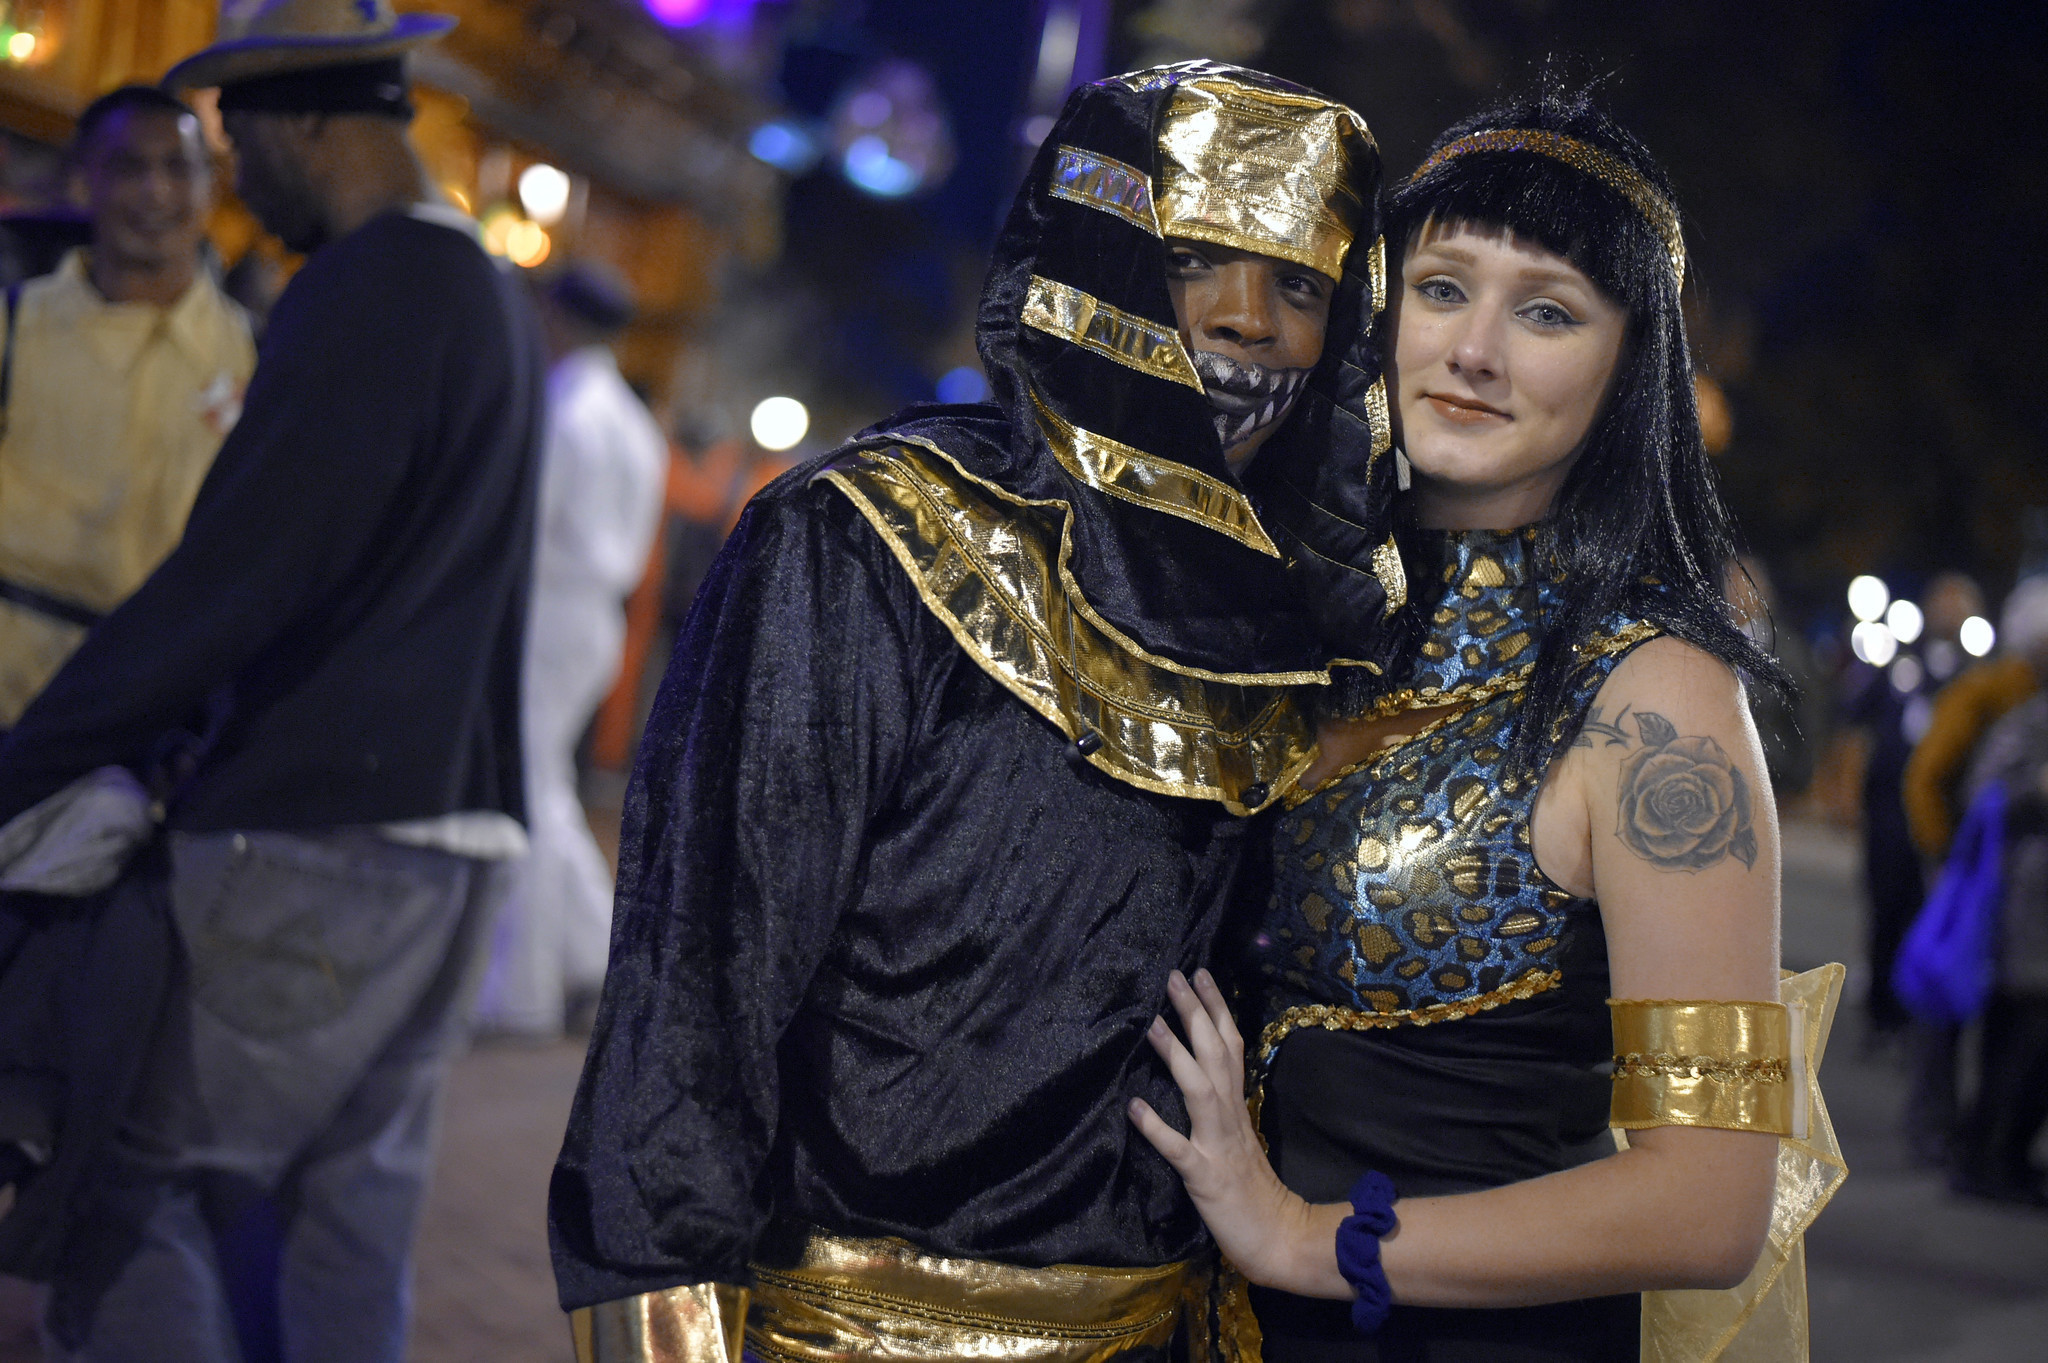 halloween happenings in the baltimore area baltimore sun - Halloween Events Maryland